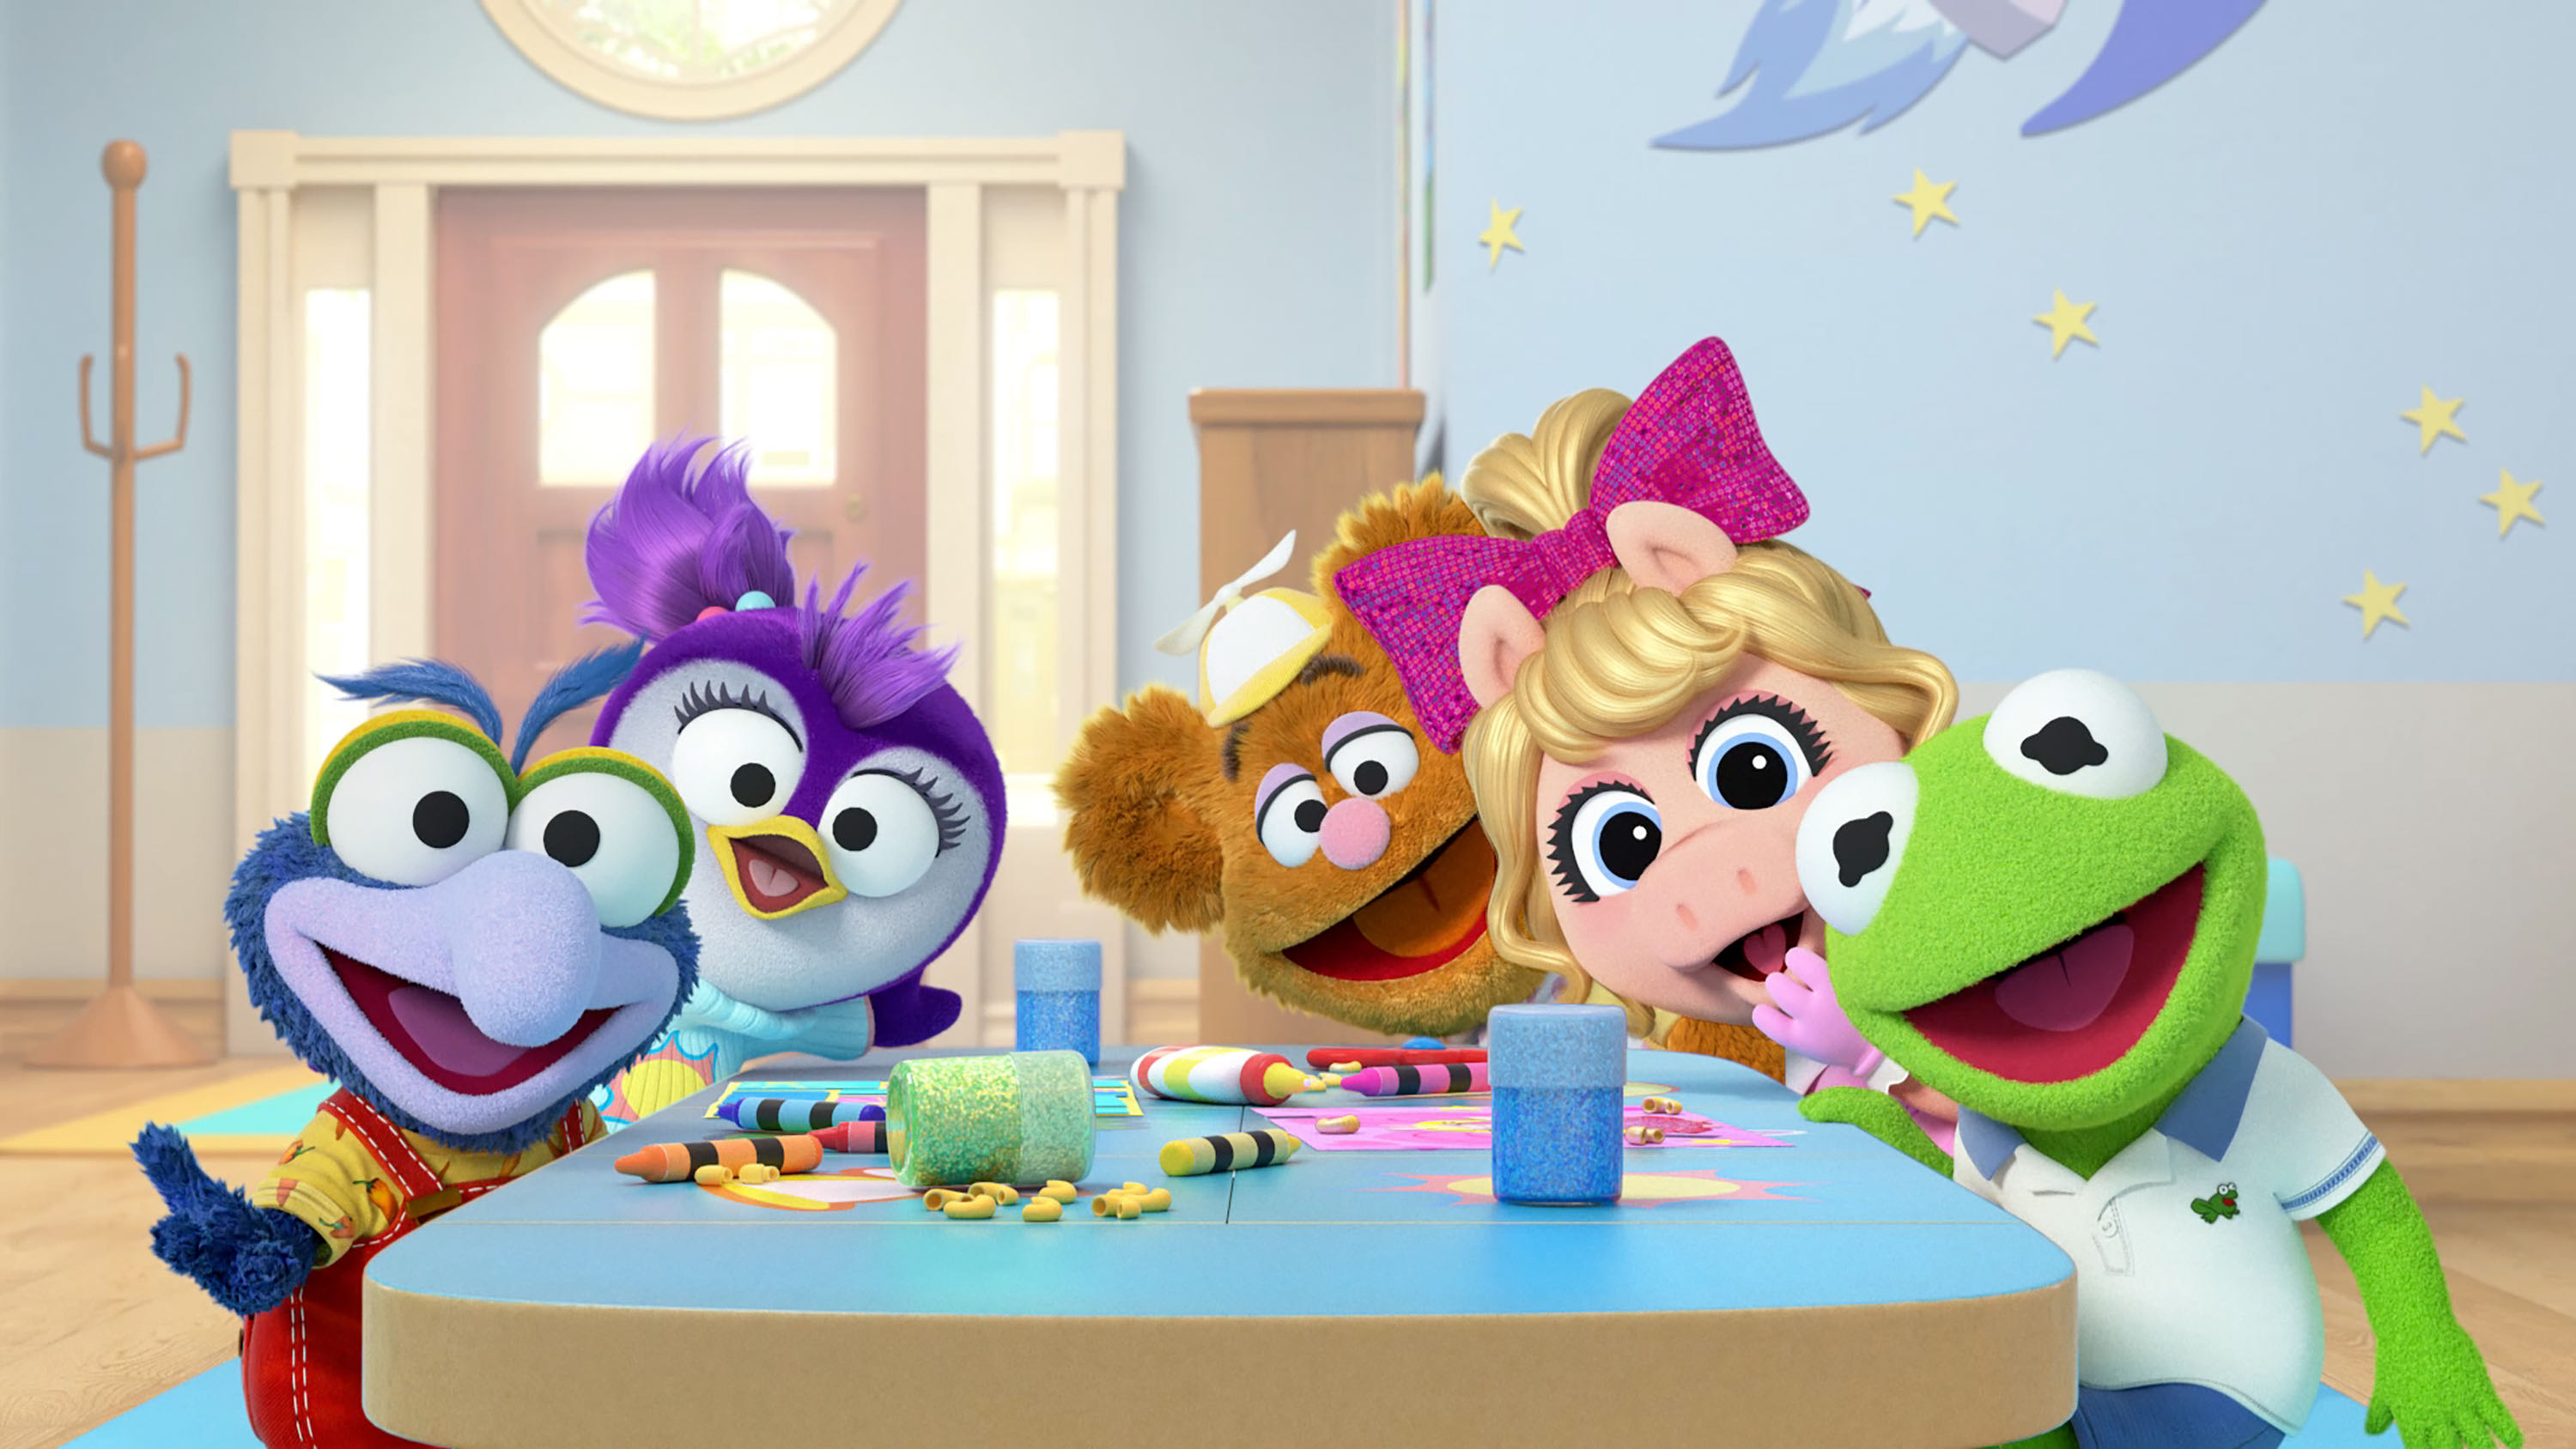 """MUPPET BABIES - Disney has begun production on a reimagined """"Muppet Babies"""" television series, which chronicles the playroom antics of the beloved Kermit the Frog, Piggy, Fozzie Bear, Gonzo, Animal and Miss Nanny. A co-production between Disney Junior, Disney Consumer Products and Interactive Media's (DCPI) Content & Media group, and The Muppets Studio, the CG-animated series is slated to debut on Disney Junior in early 2018. (Disney Junior) BABY GONZO, BABY SUMMER, BABY FOZZIE, BABY PIGGY, BABY KERMIT"""